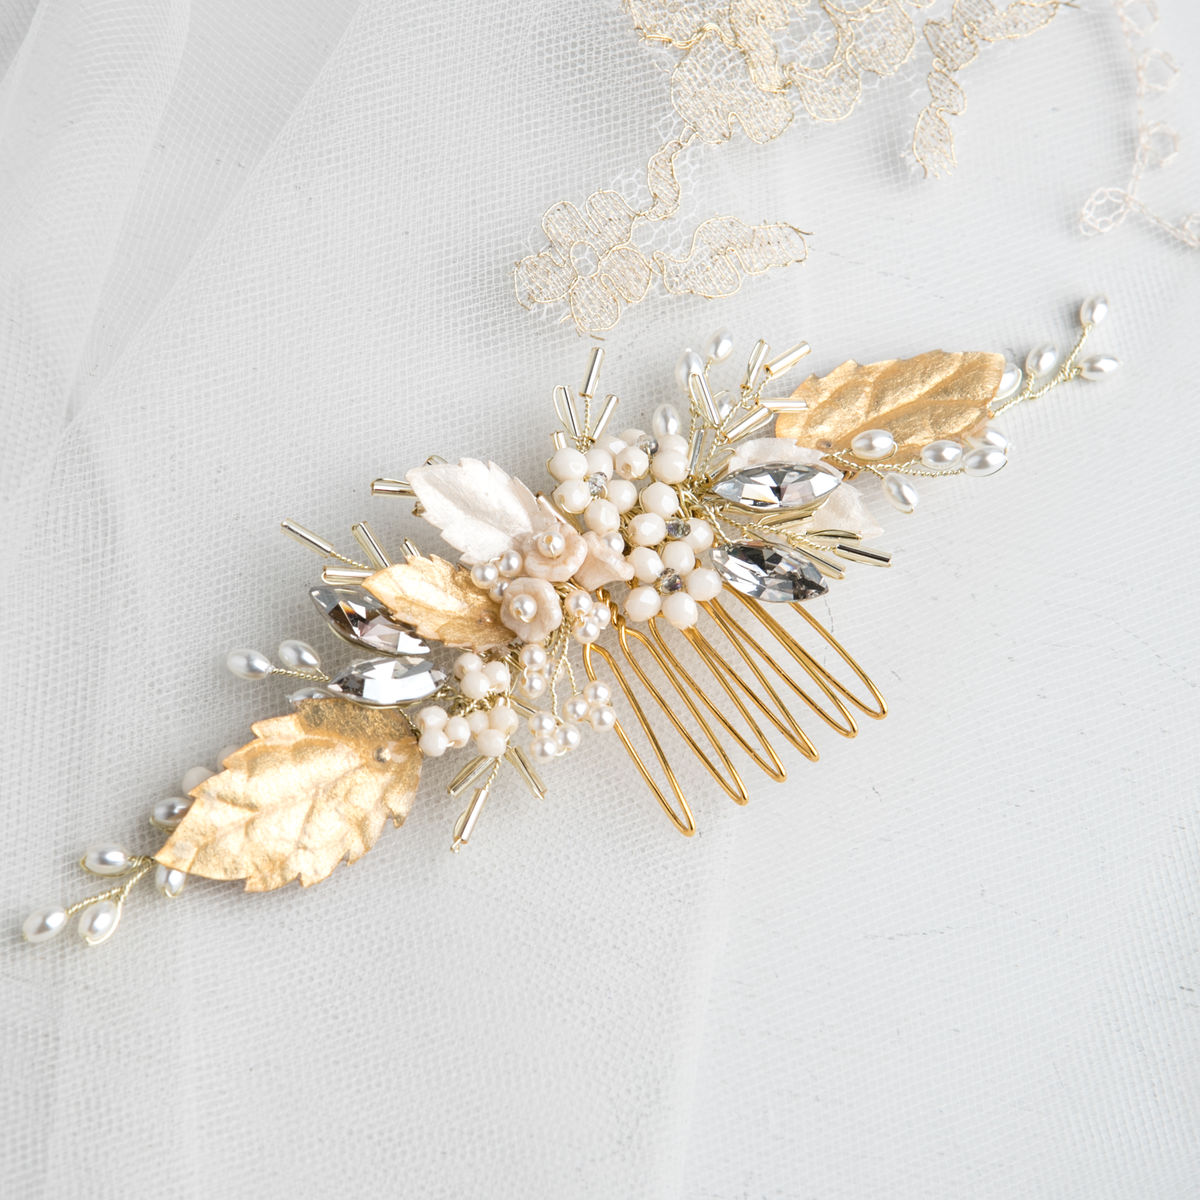 Luna Gold Bridal Comb - product images  of